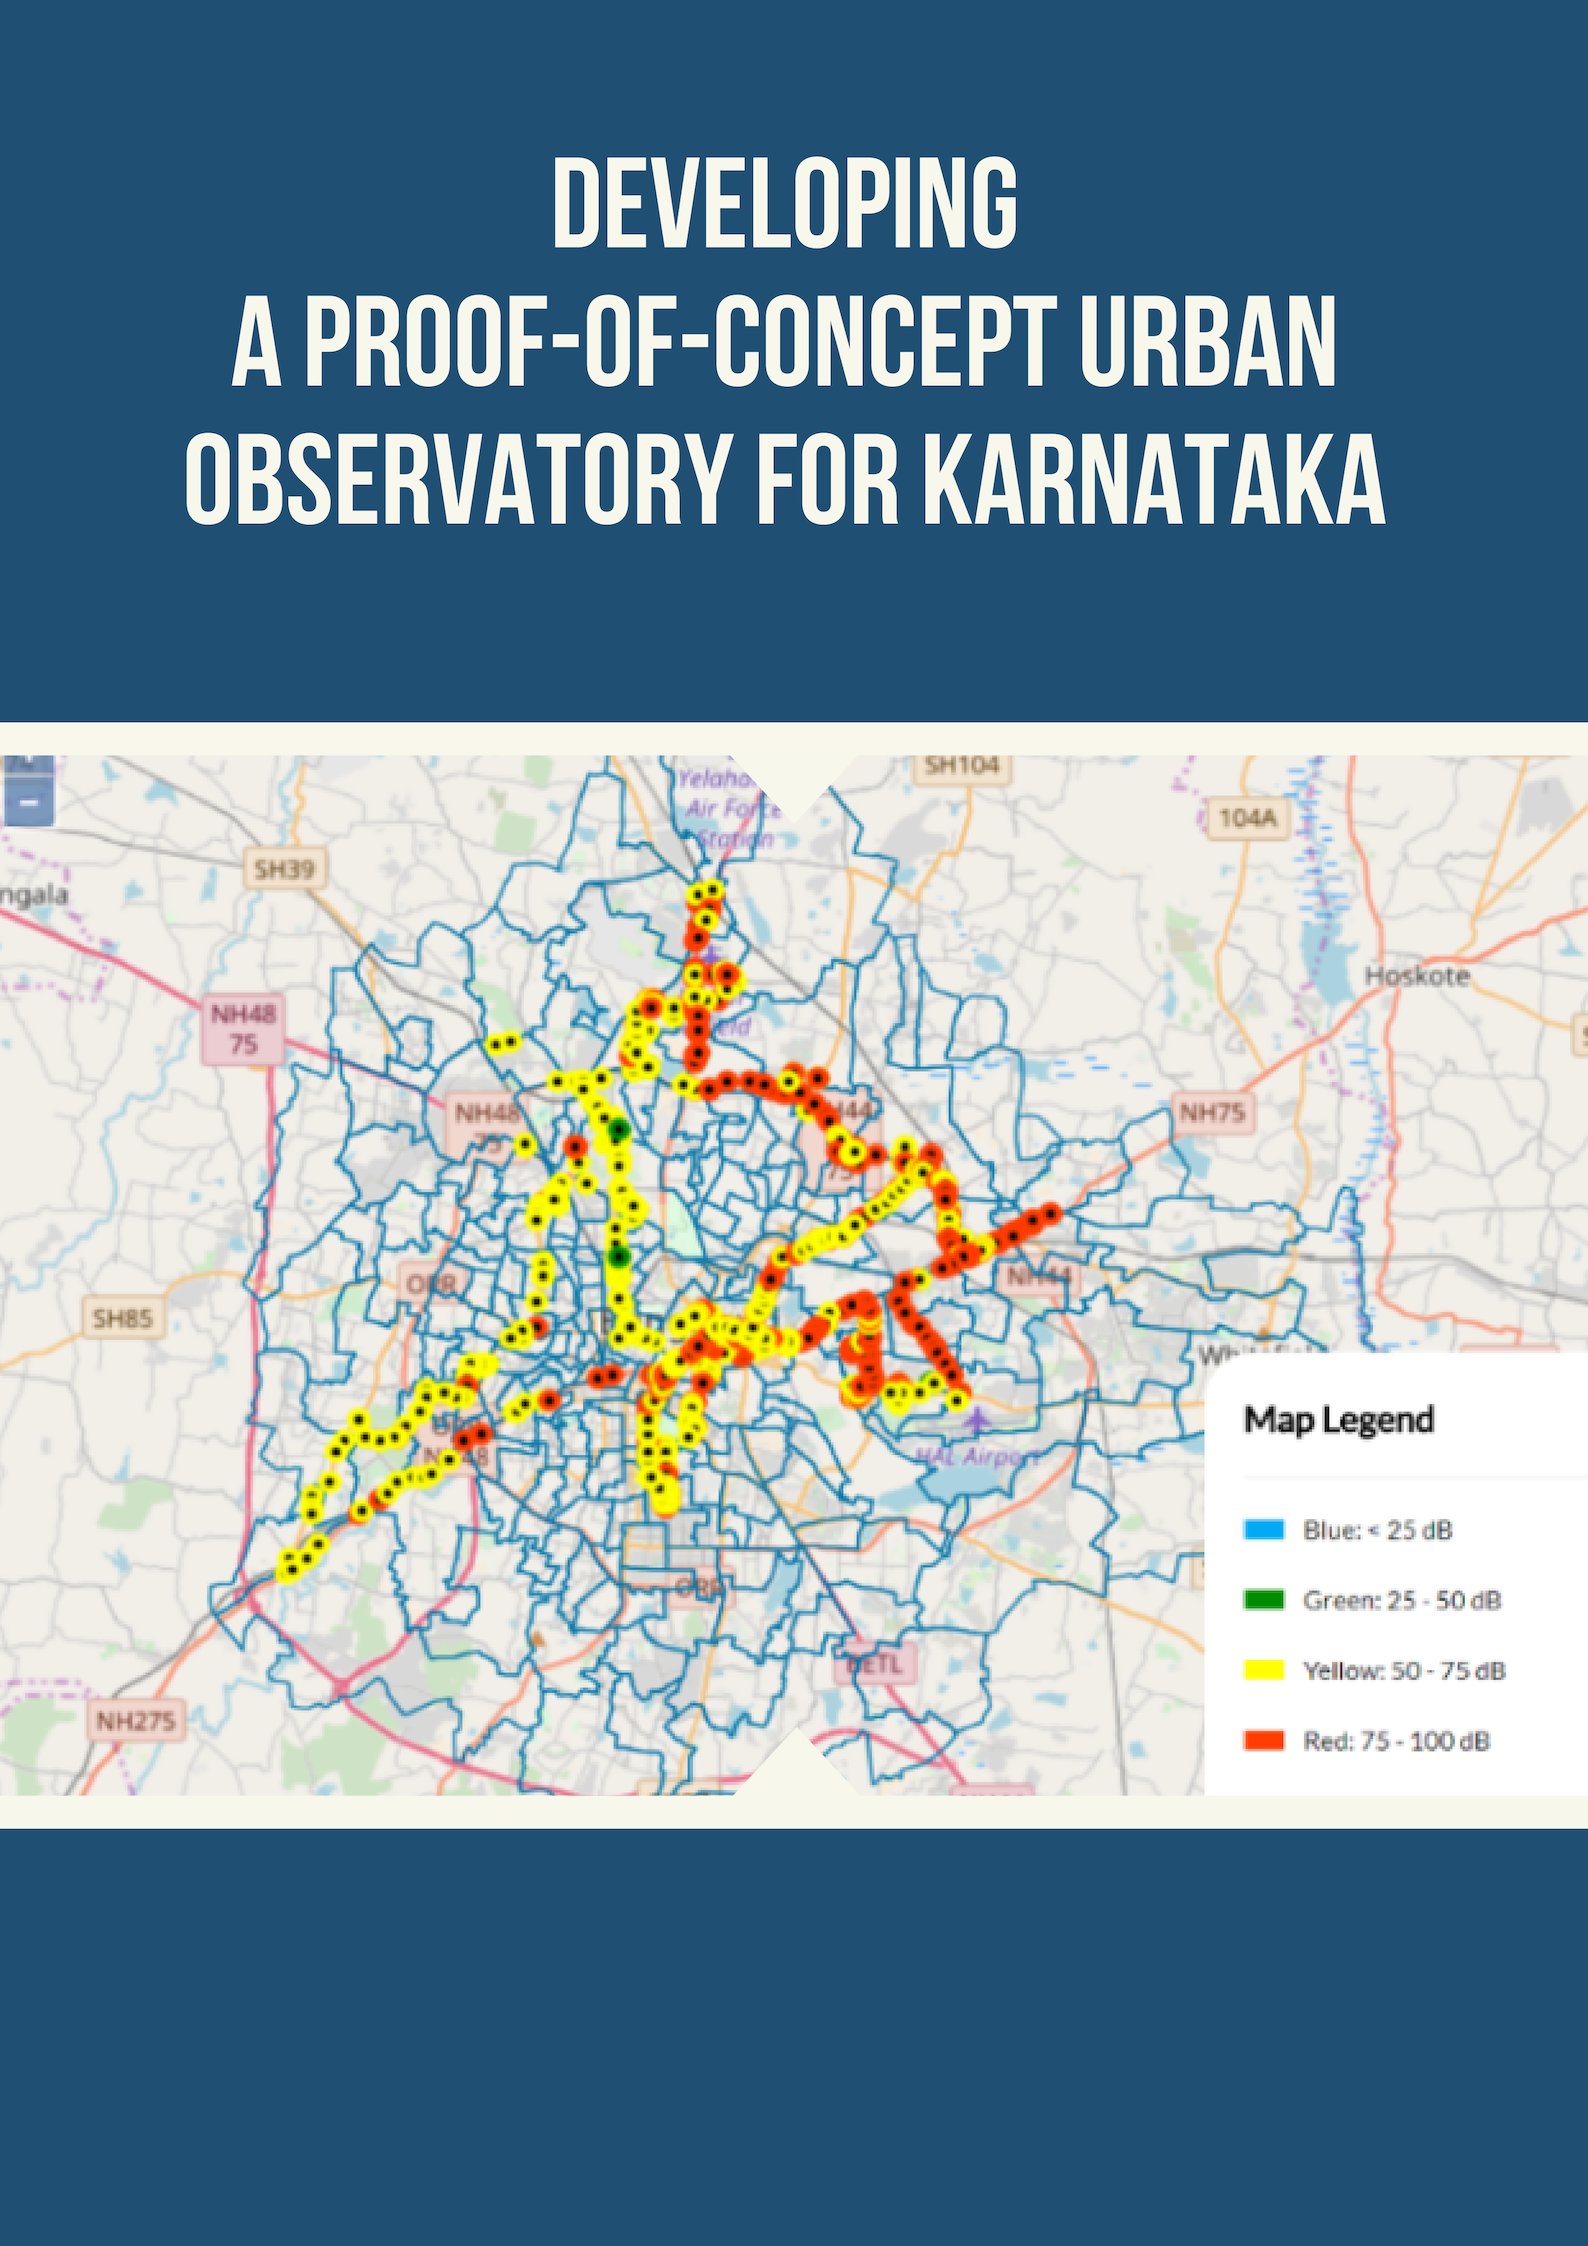 Developing a Proof-of-Concept Urban Observatory for Karnataka